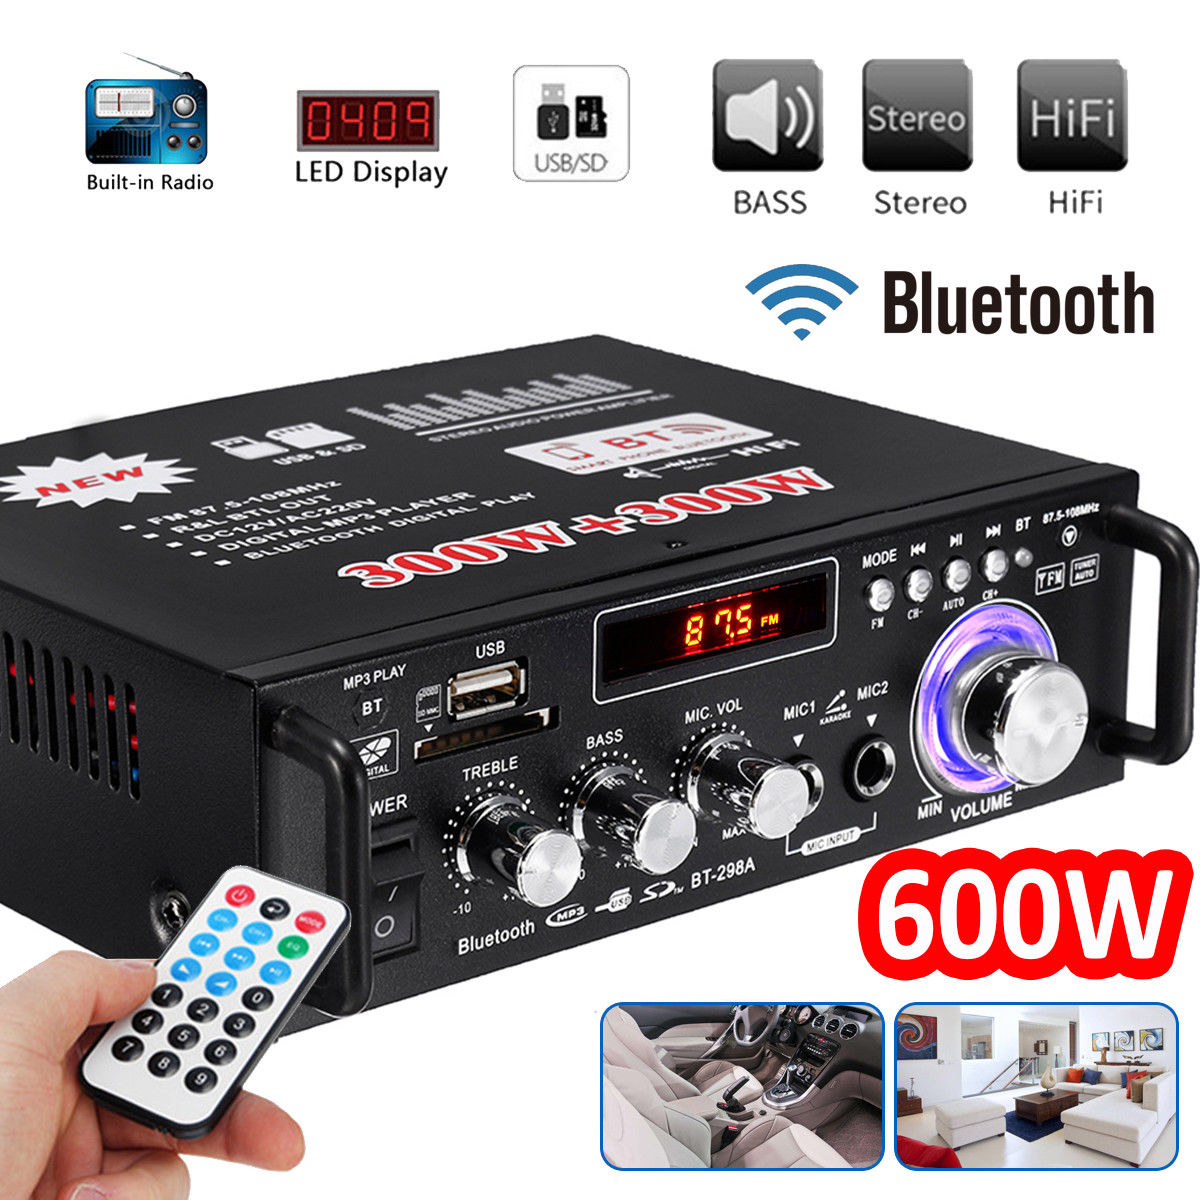 600W Home Car Amplifier 110V HIFI USB FM Radio Audio bluetooth Amplifiers Player Subwoofer Stereo Speaker With Remote Control600W Home Car Amplifier 110V HIFI USB FM Radio Audio bluetooth Amplifiers Player Subwoofer Stereo Speaker With Remote Control